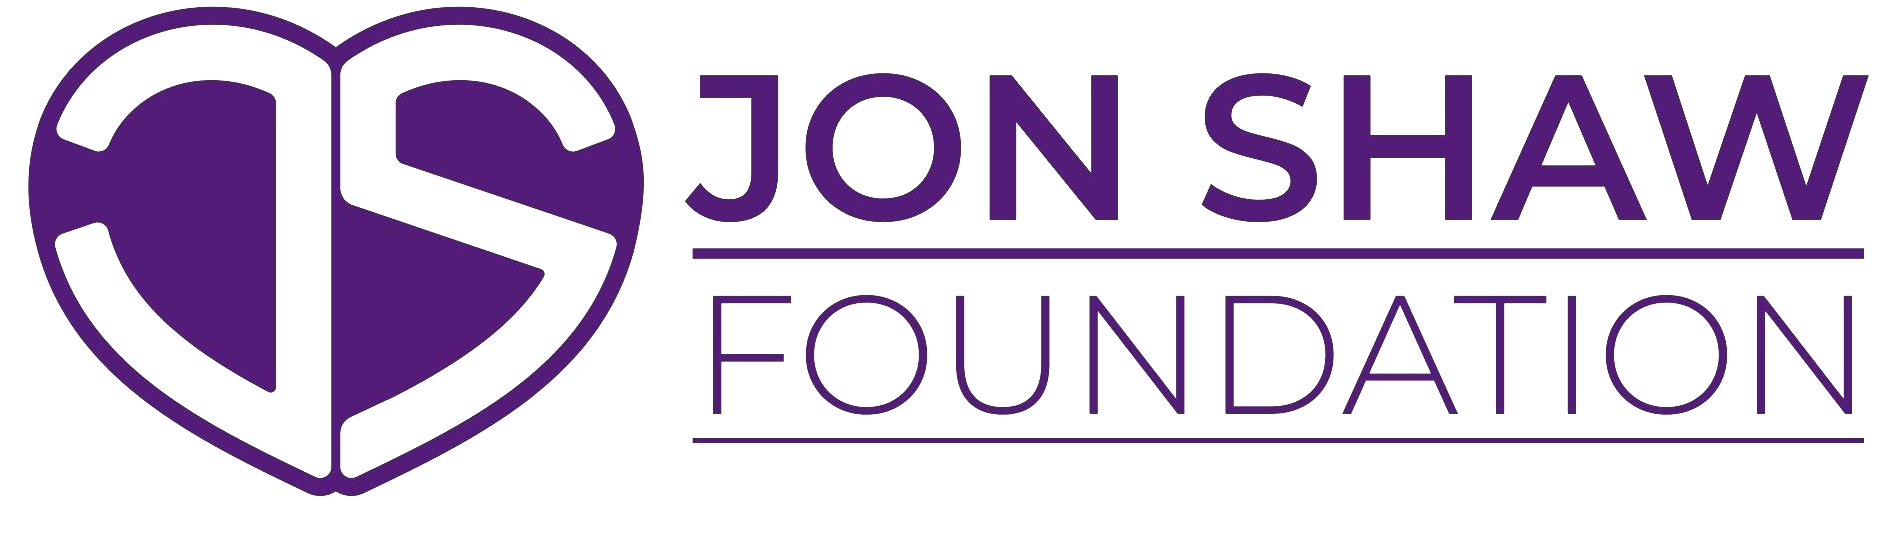 Jon Shaw Foundation